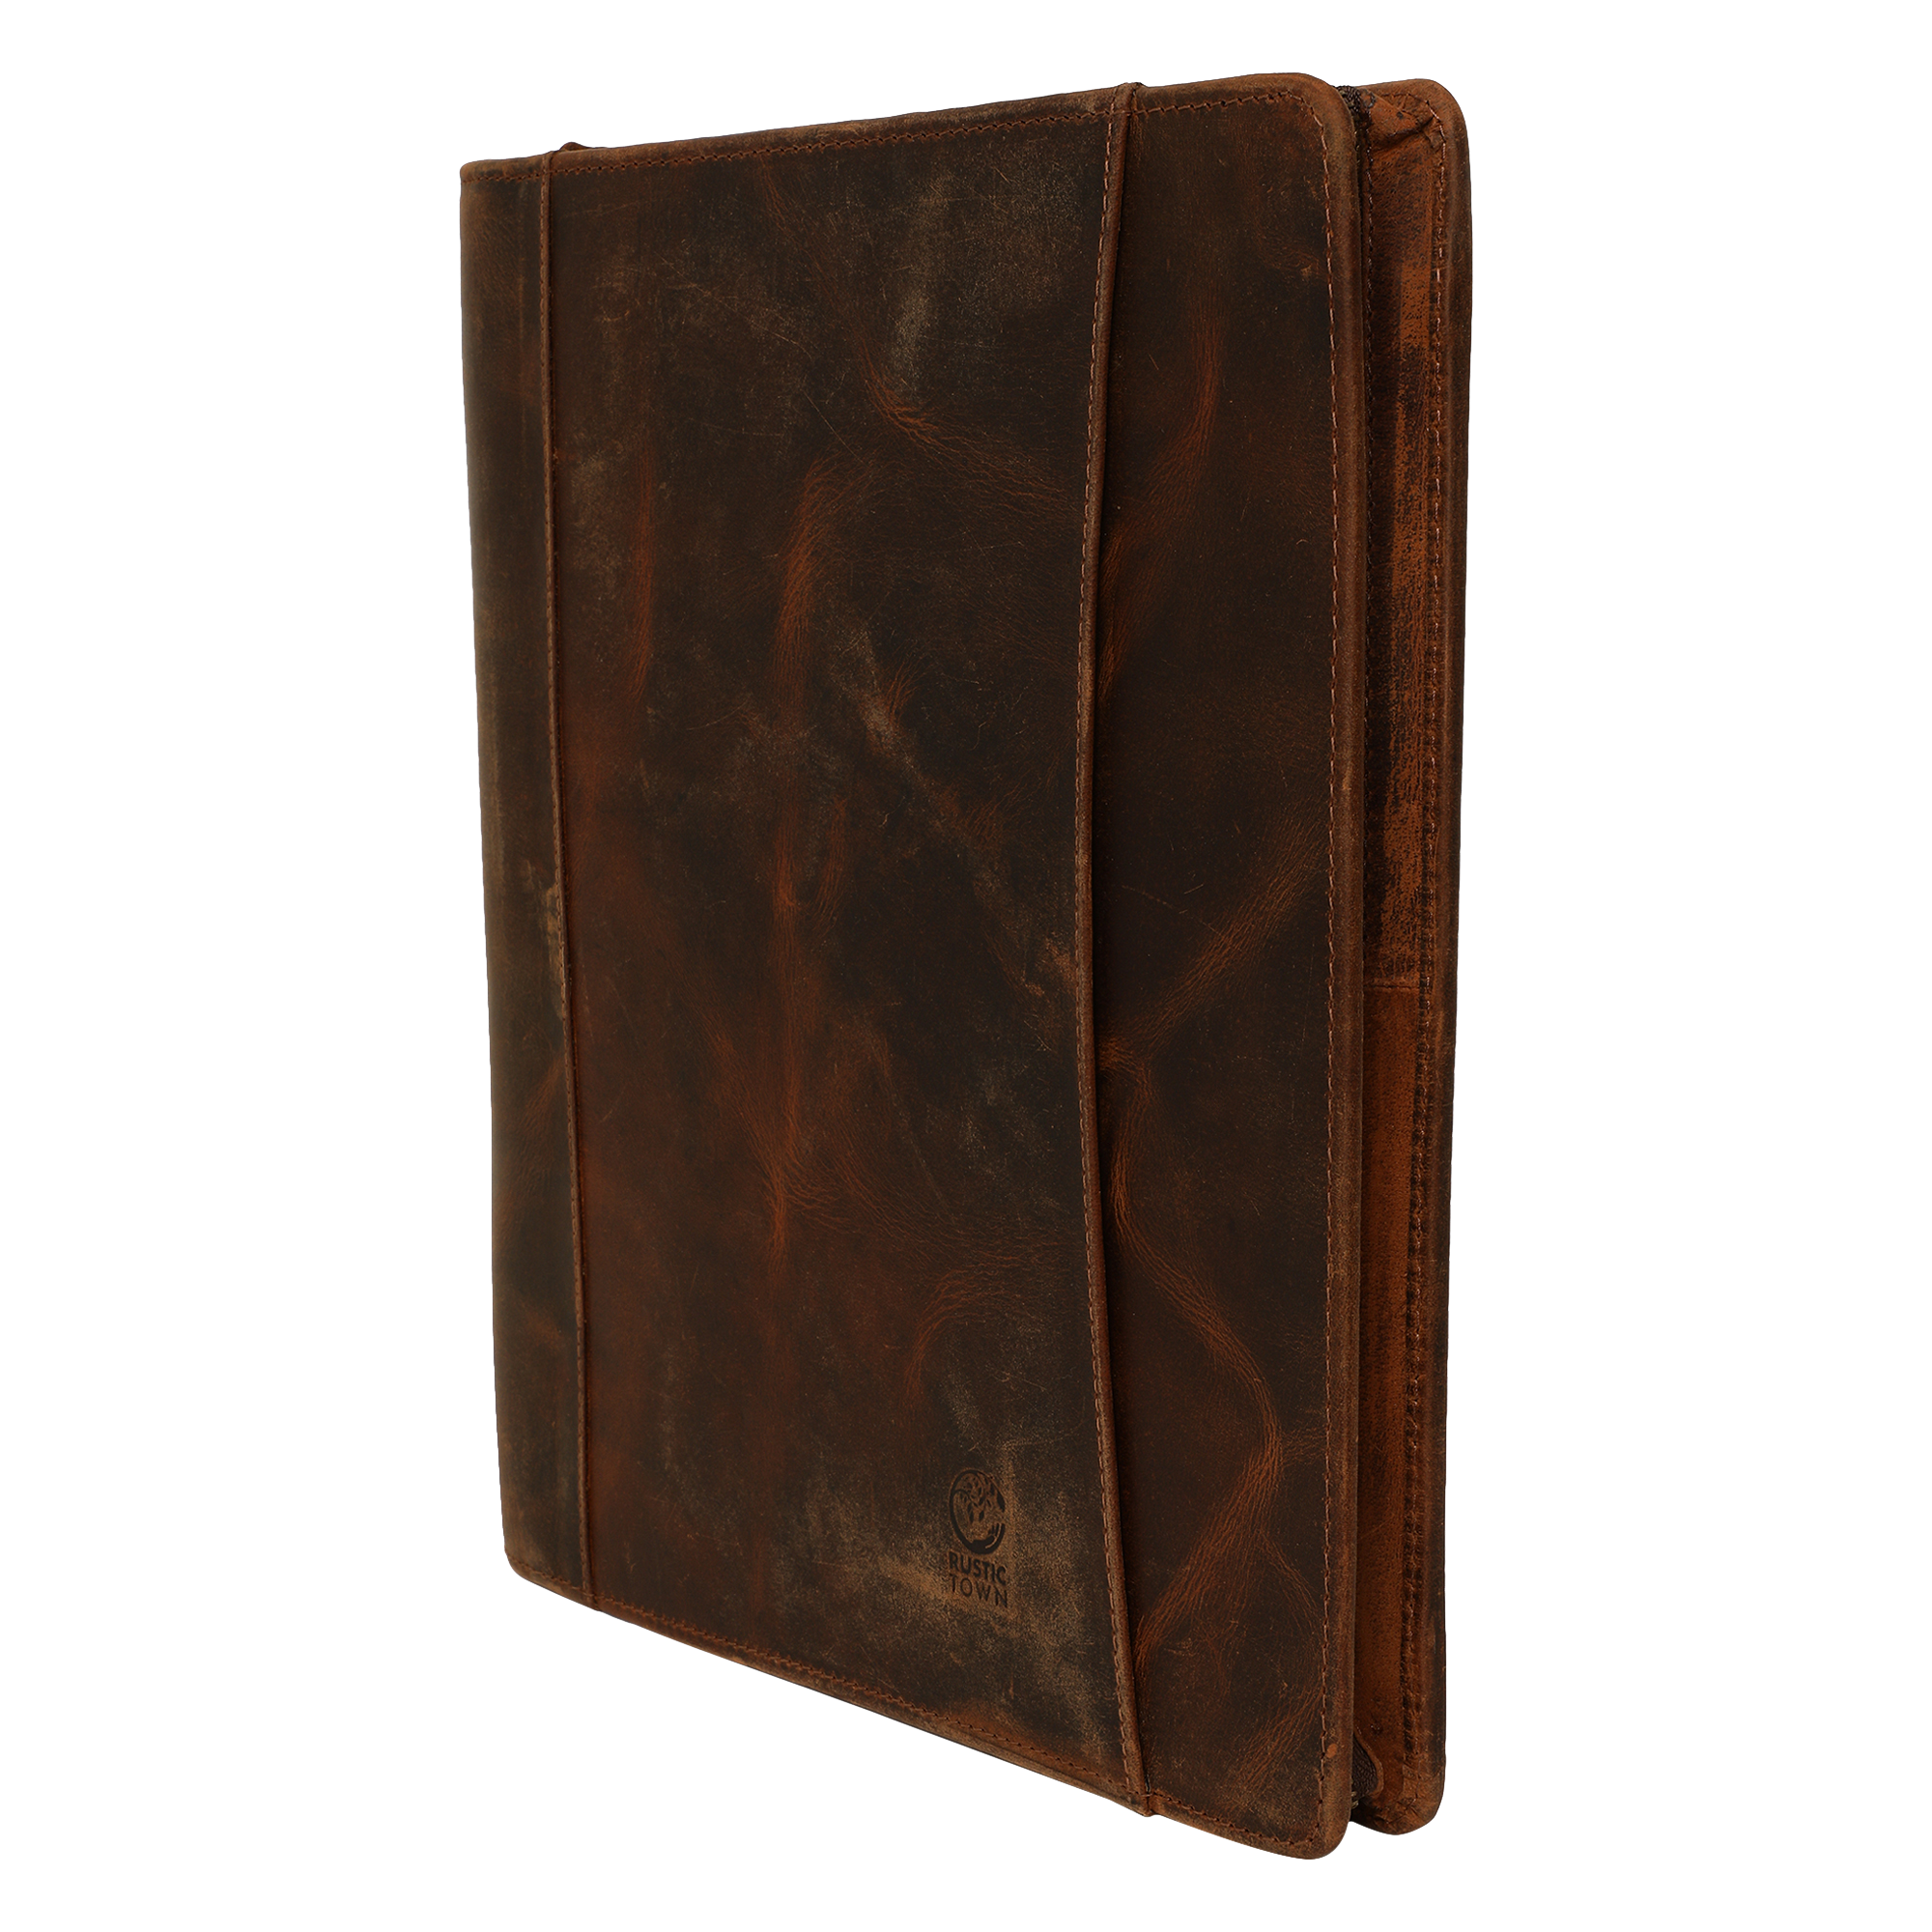 Kingsman Business Leather Portfolio Professional Organizer (Walnut/Mulberry)